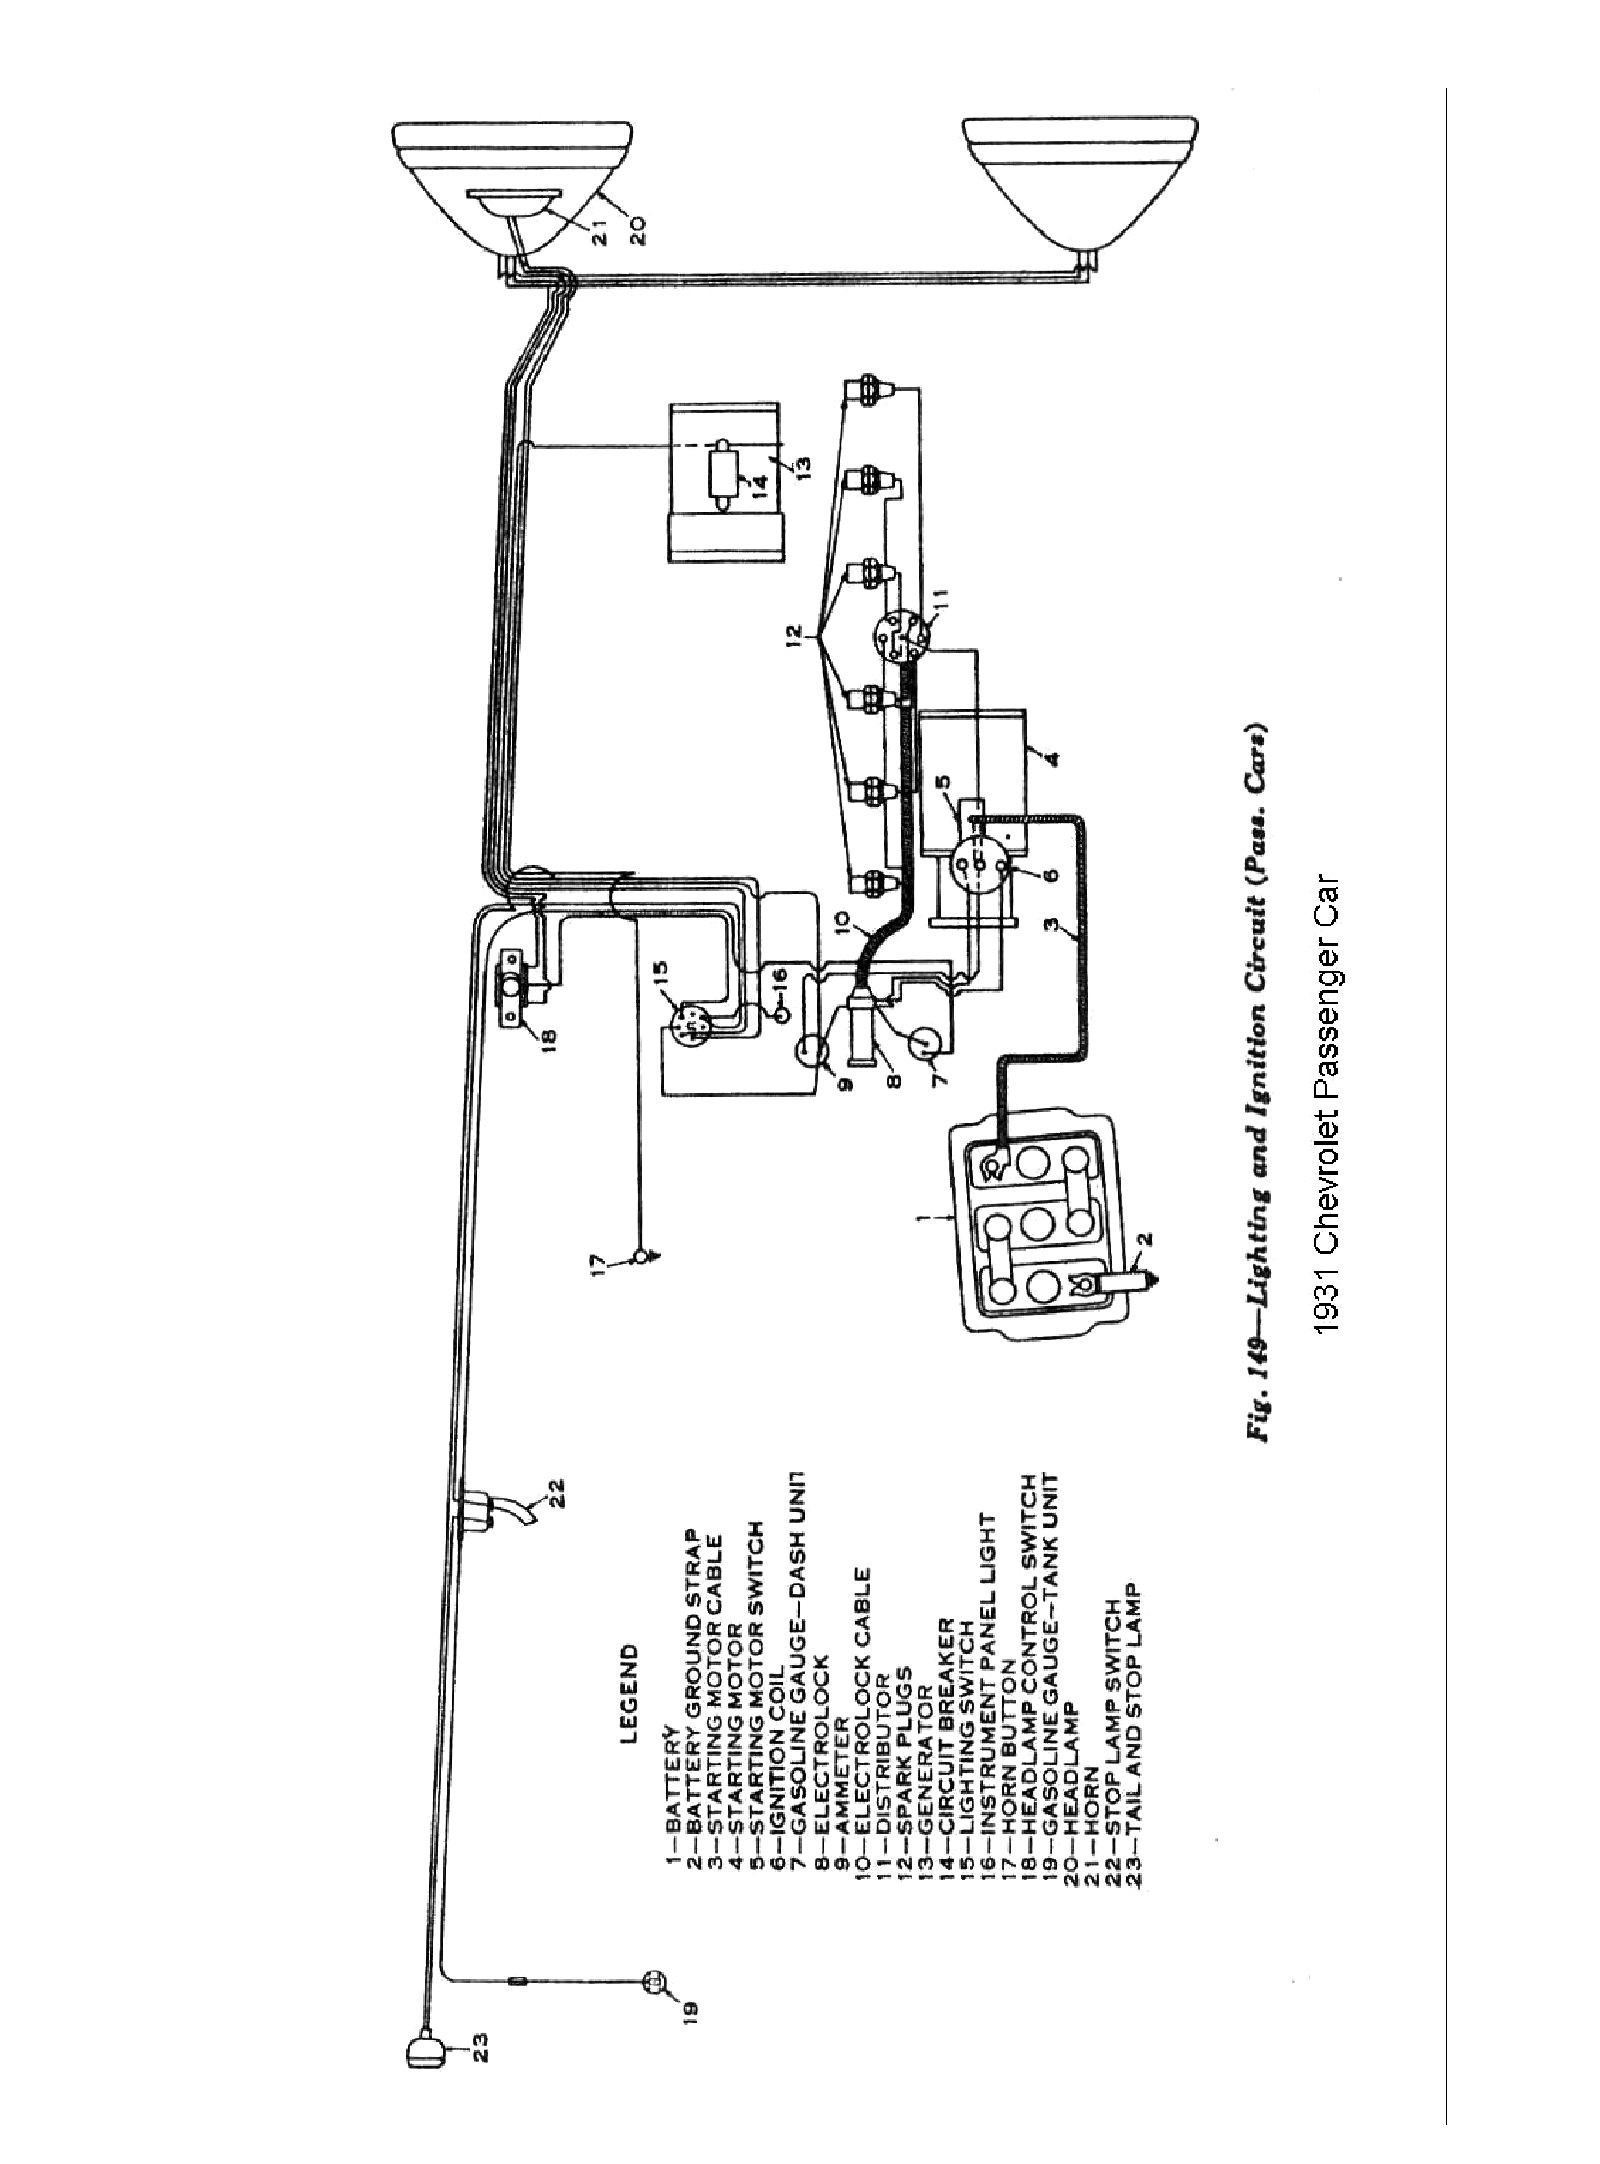 Wiring Diagram Plug Switch Light New Chevy Wiring Diagrams